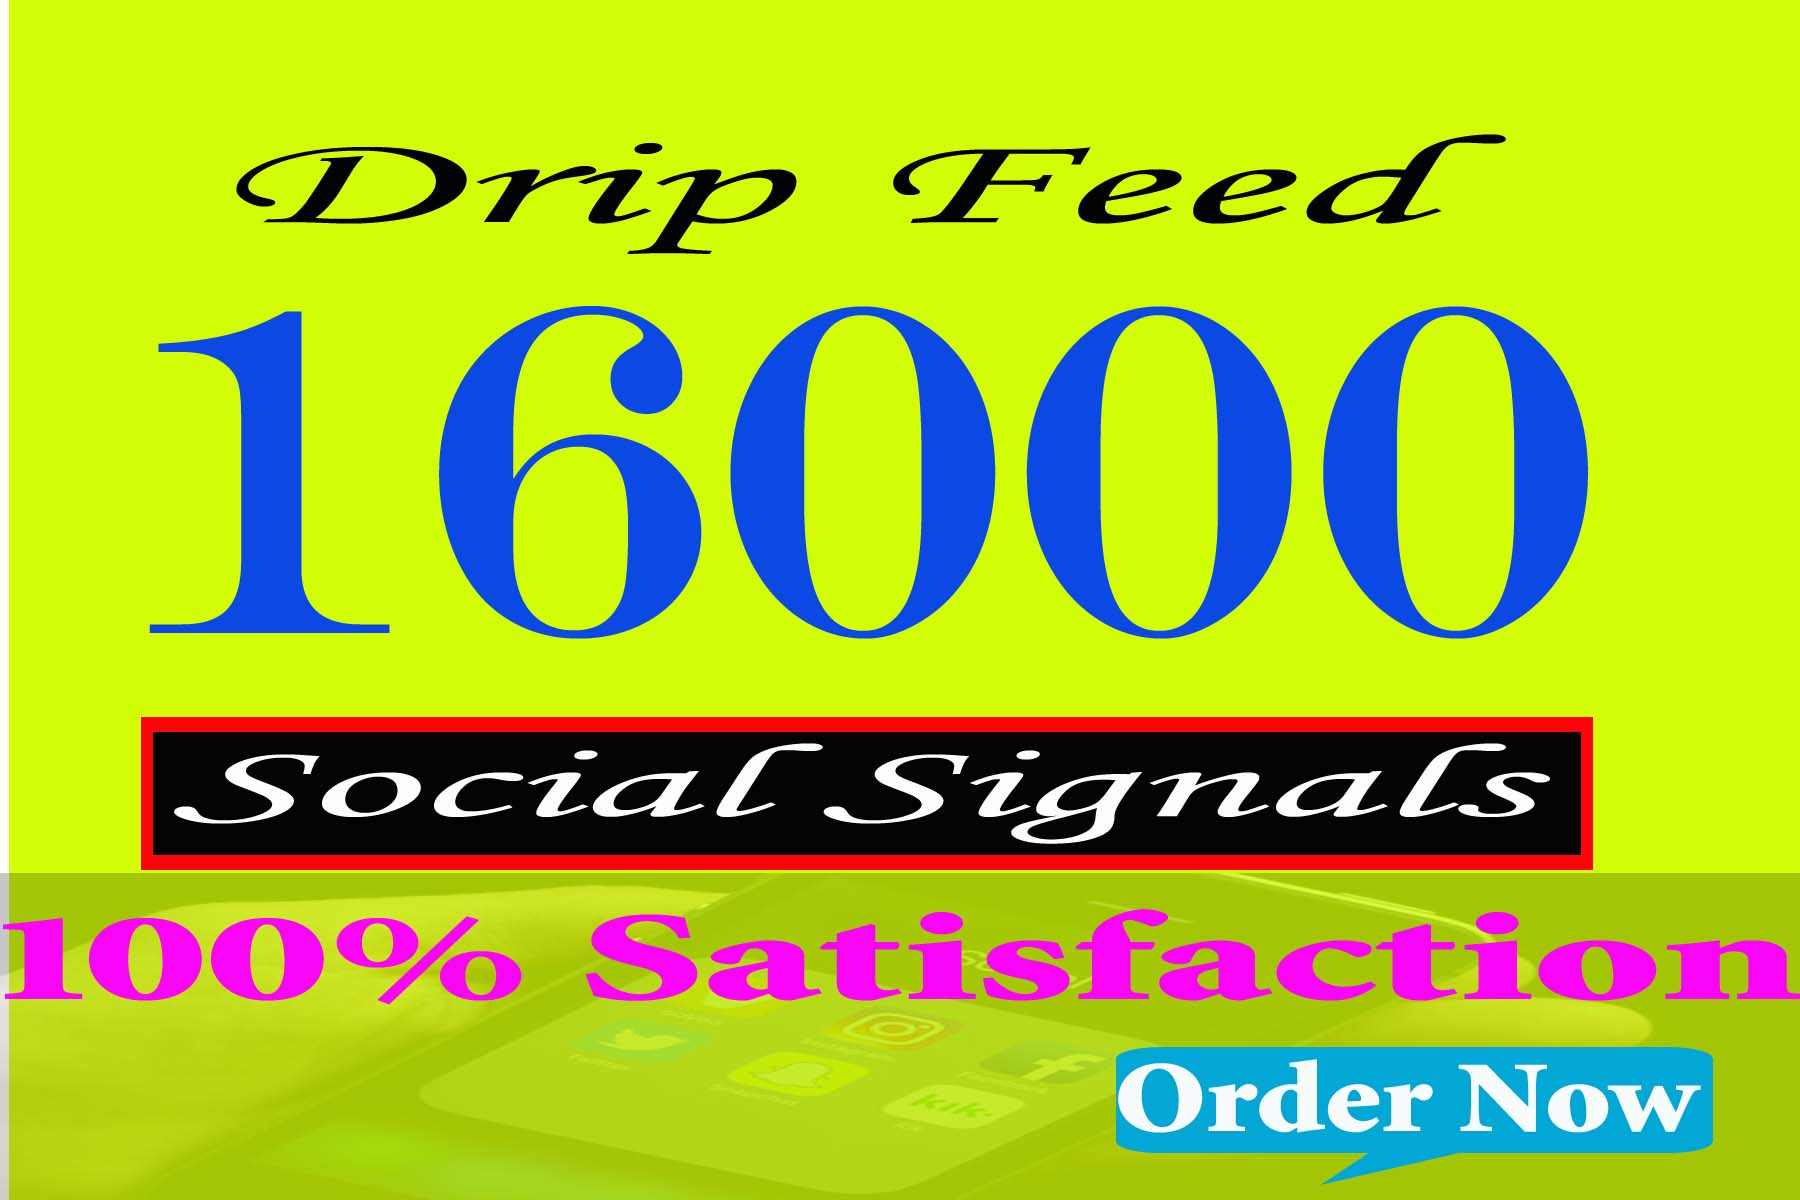 HQ Drip Feed 16000 White Hat Seo Backlinks Social Signals Improving Website